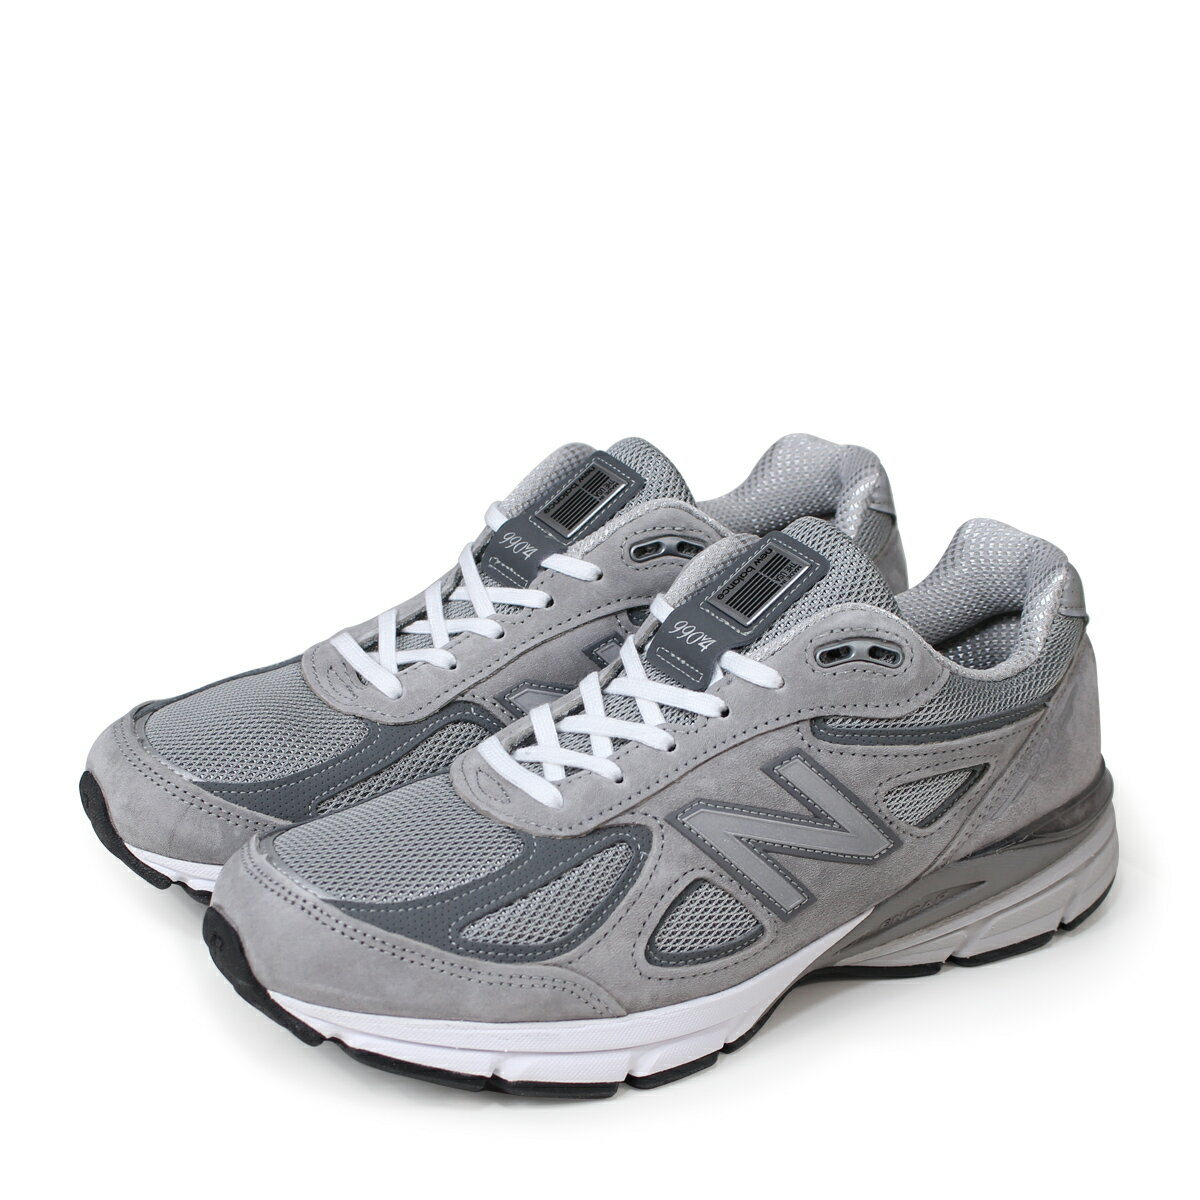 half off d5df2 55d1c new balance 990 New Balance sneakers men D Wise gray M990GL4 [193]